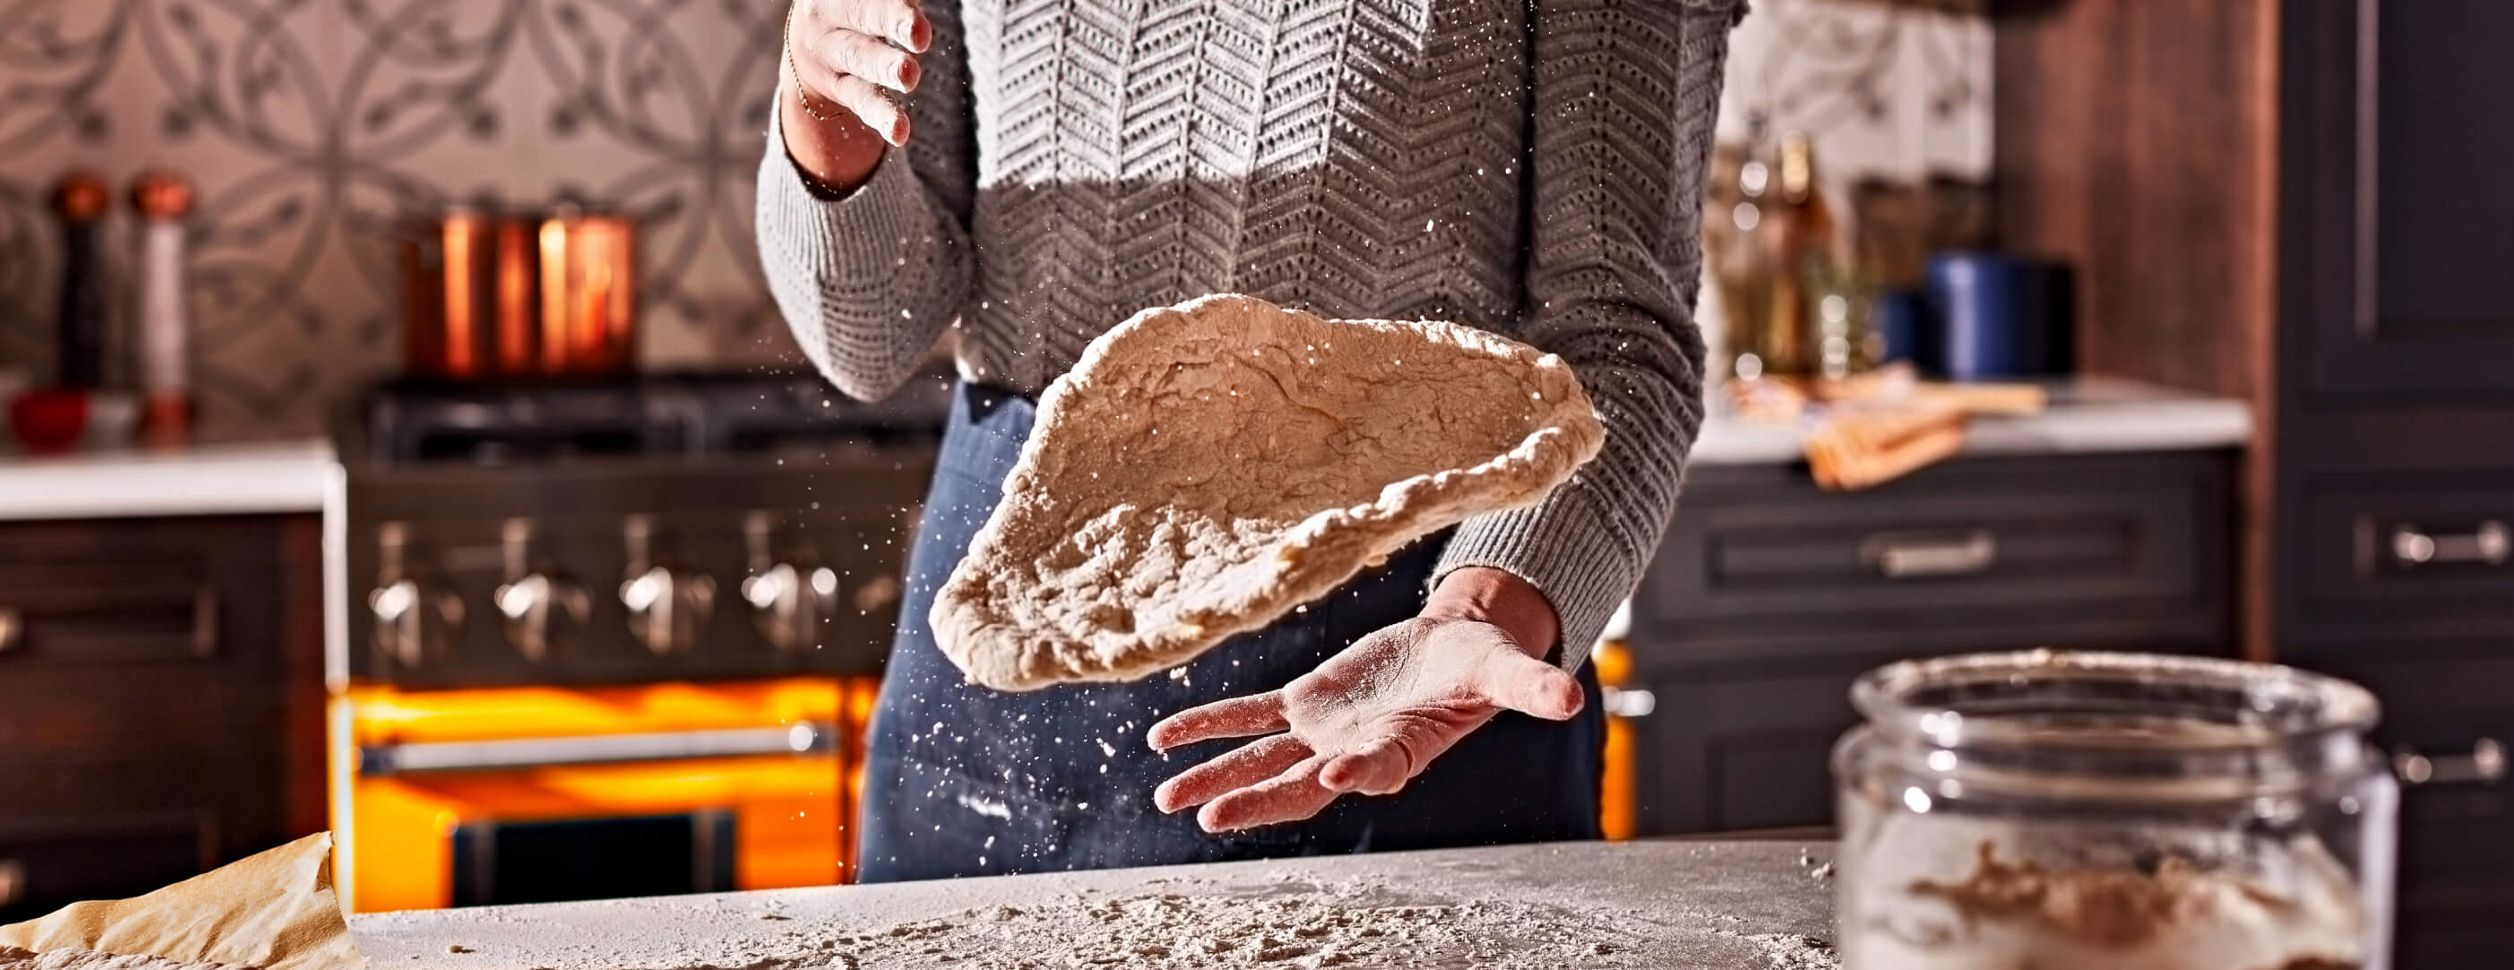 A skillful Maker in mid-throw of handmade pizza dough.